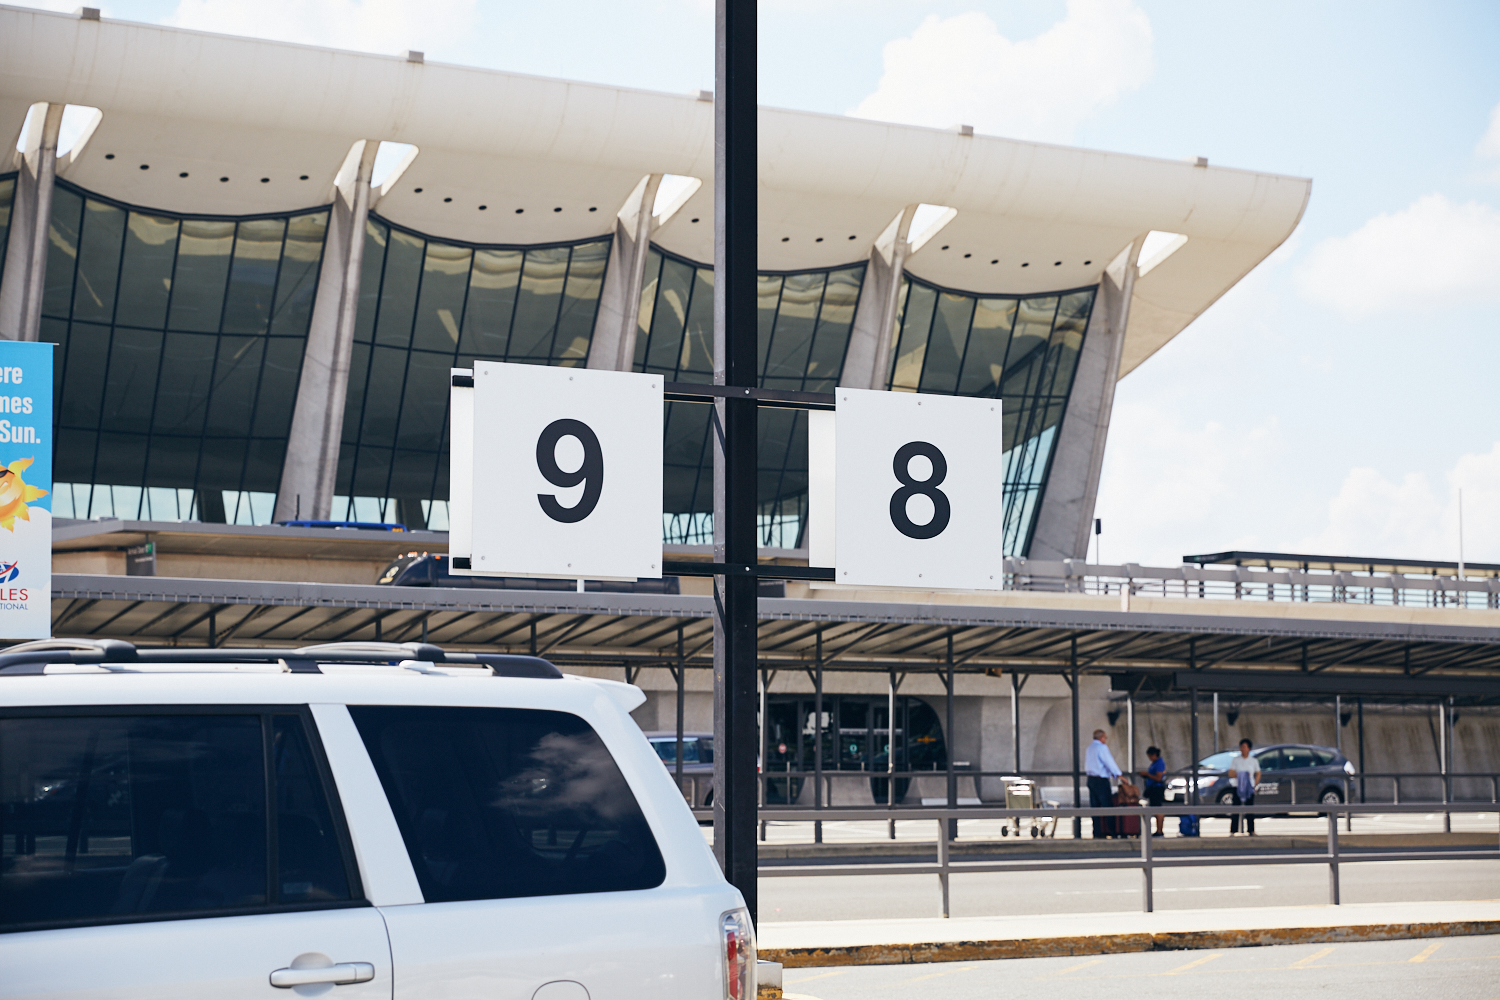 Park in daily parking here and go through door 2. Take a left once in the terminal and we will stage just left of baggage claim 10.